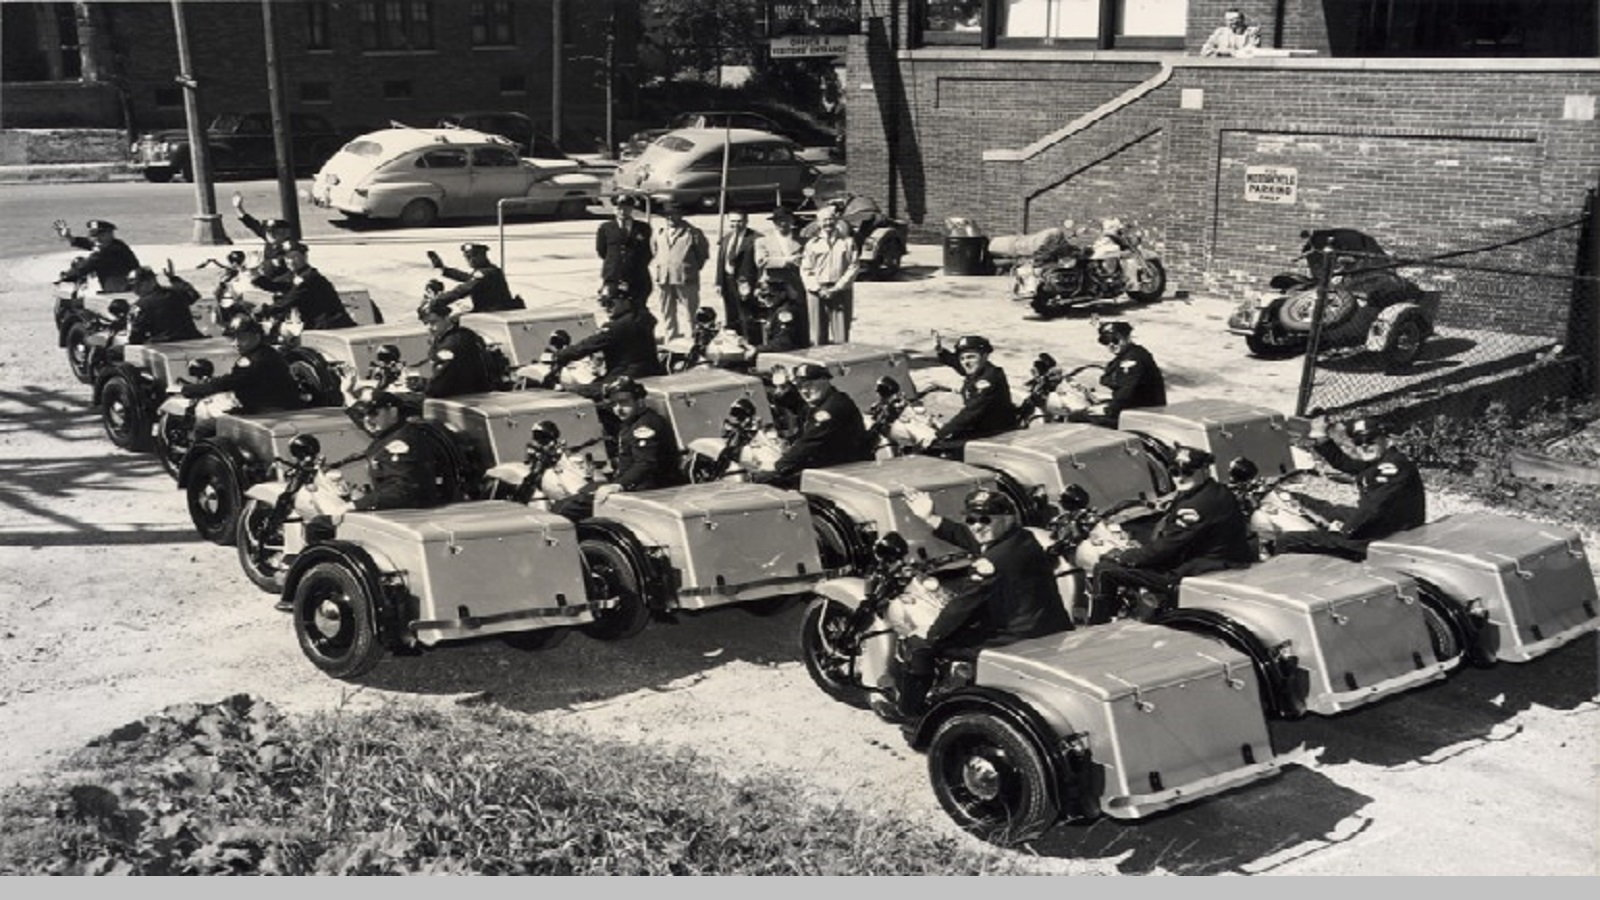 1951 Chicago Police Fleet